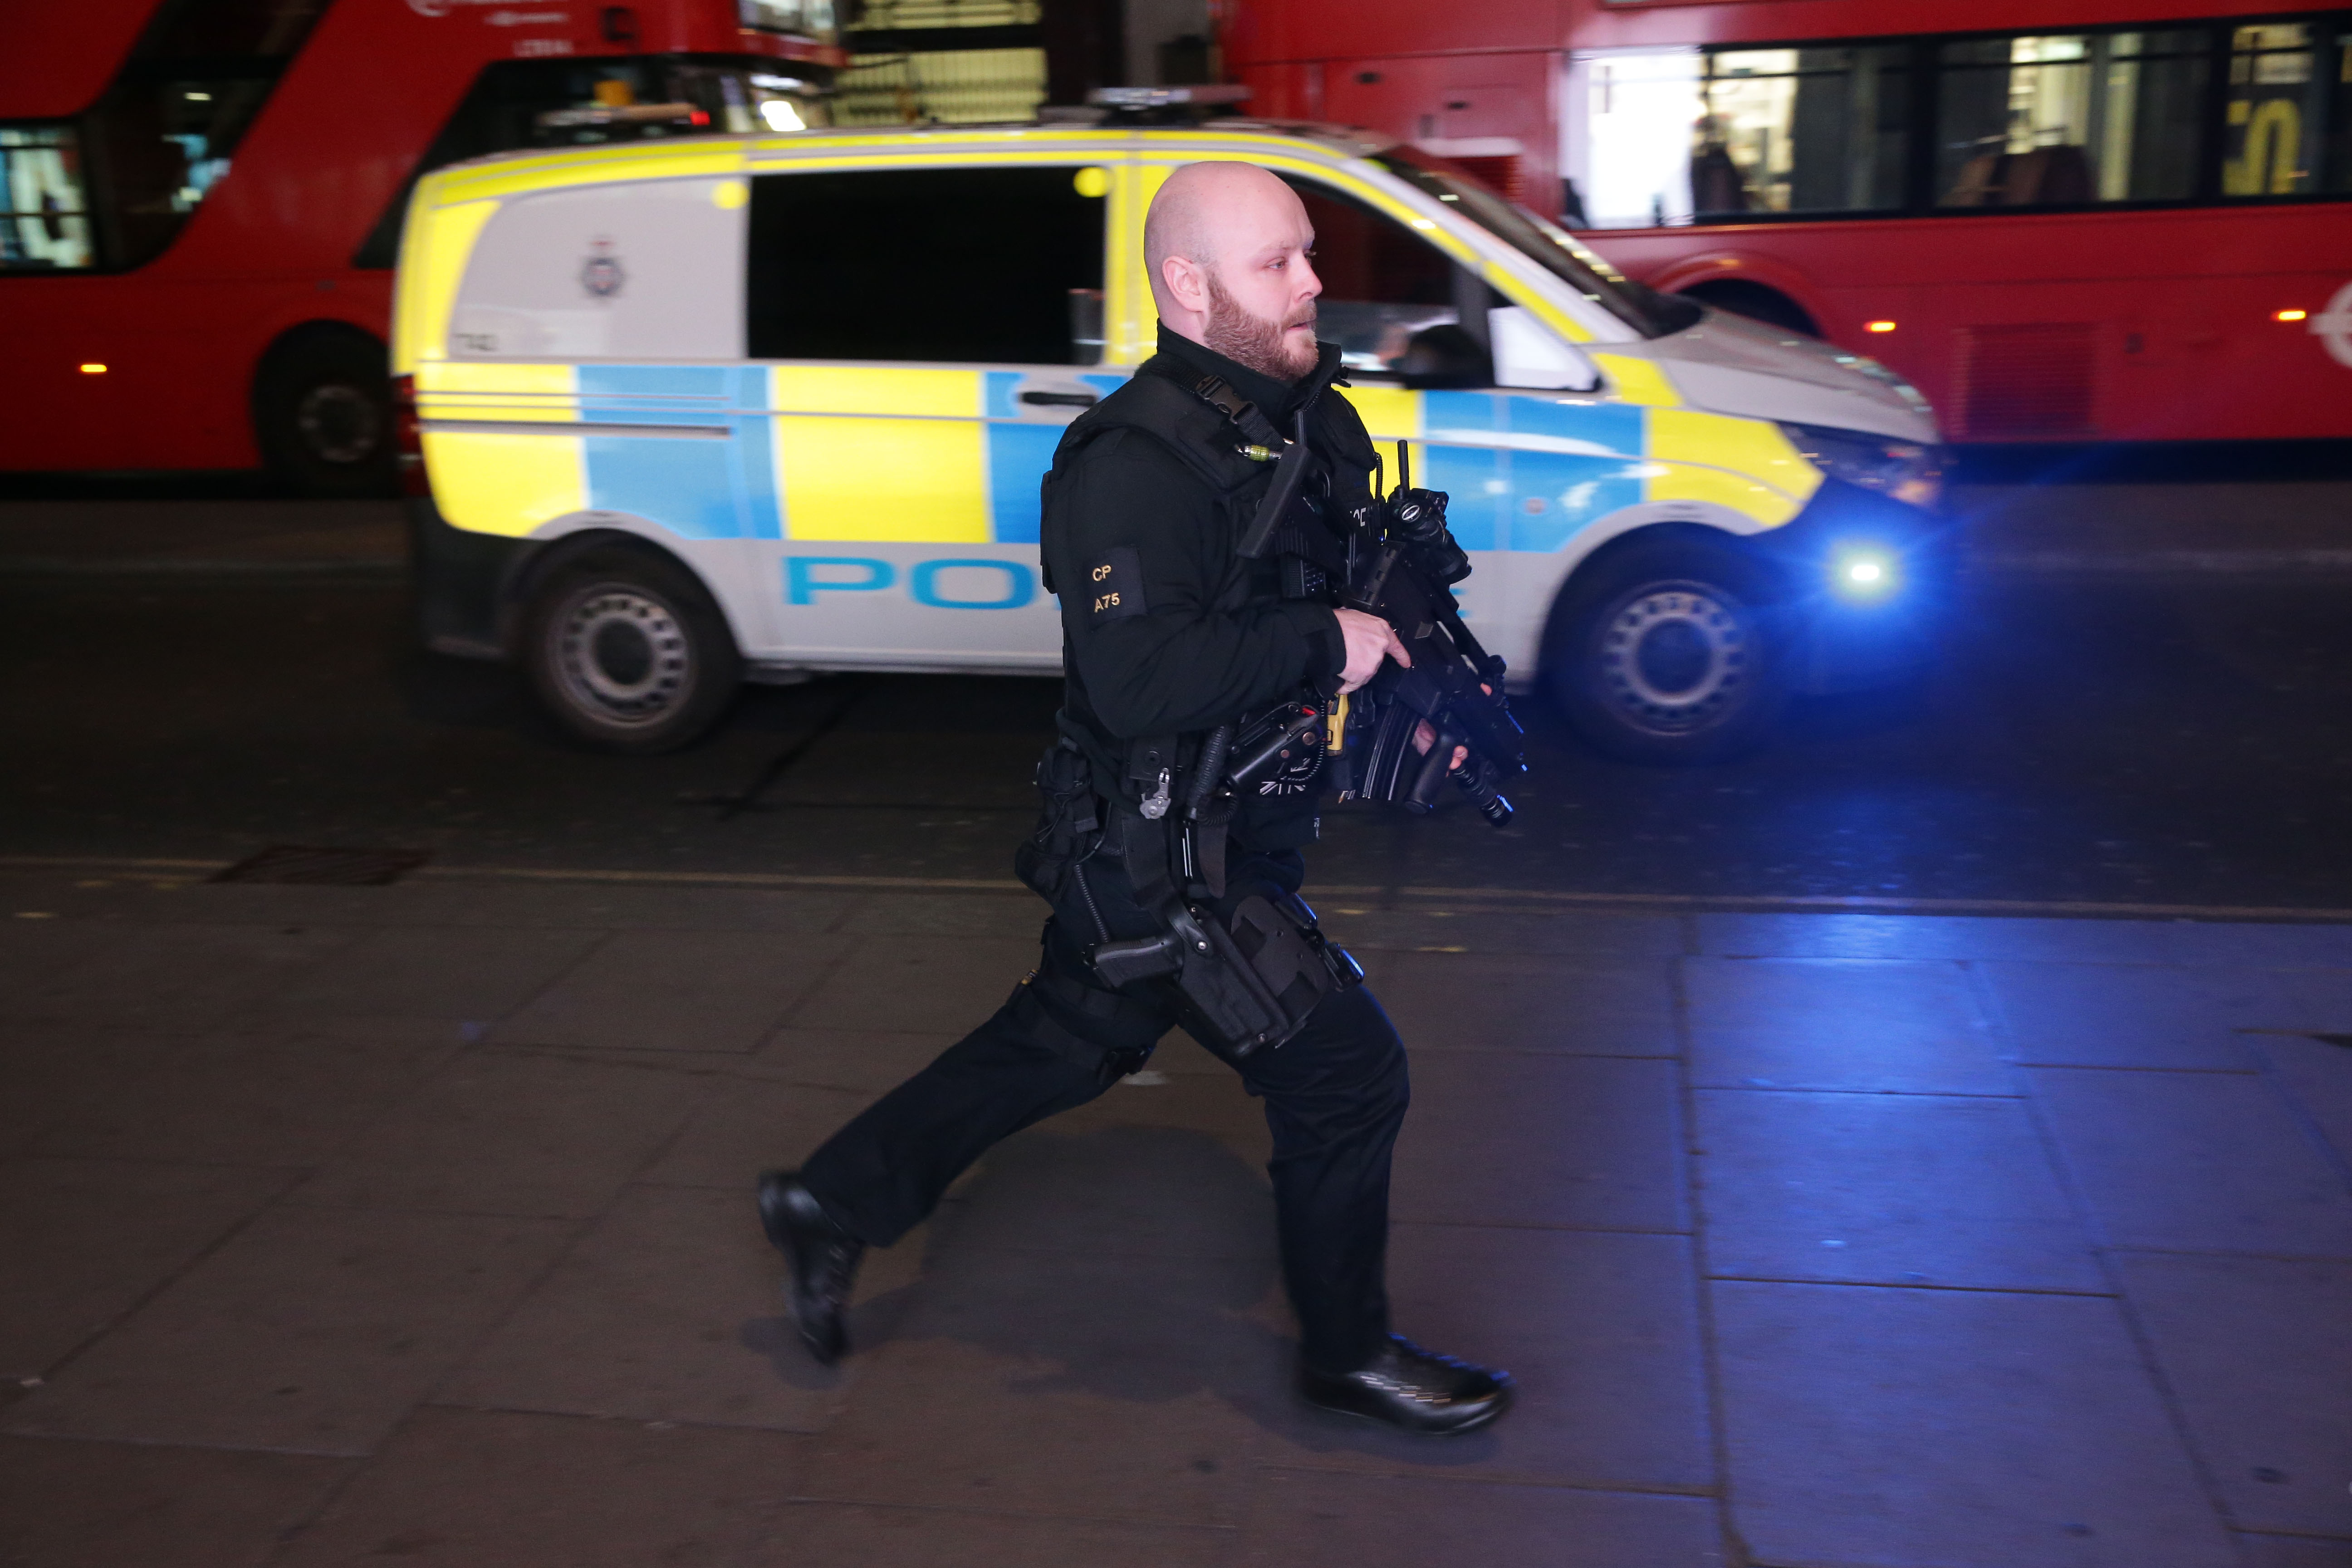 Police Say No Evidence Of Shots Fired Or Casualties At Oxford Circus GettyImages 878519034